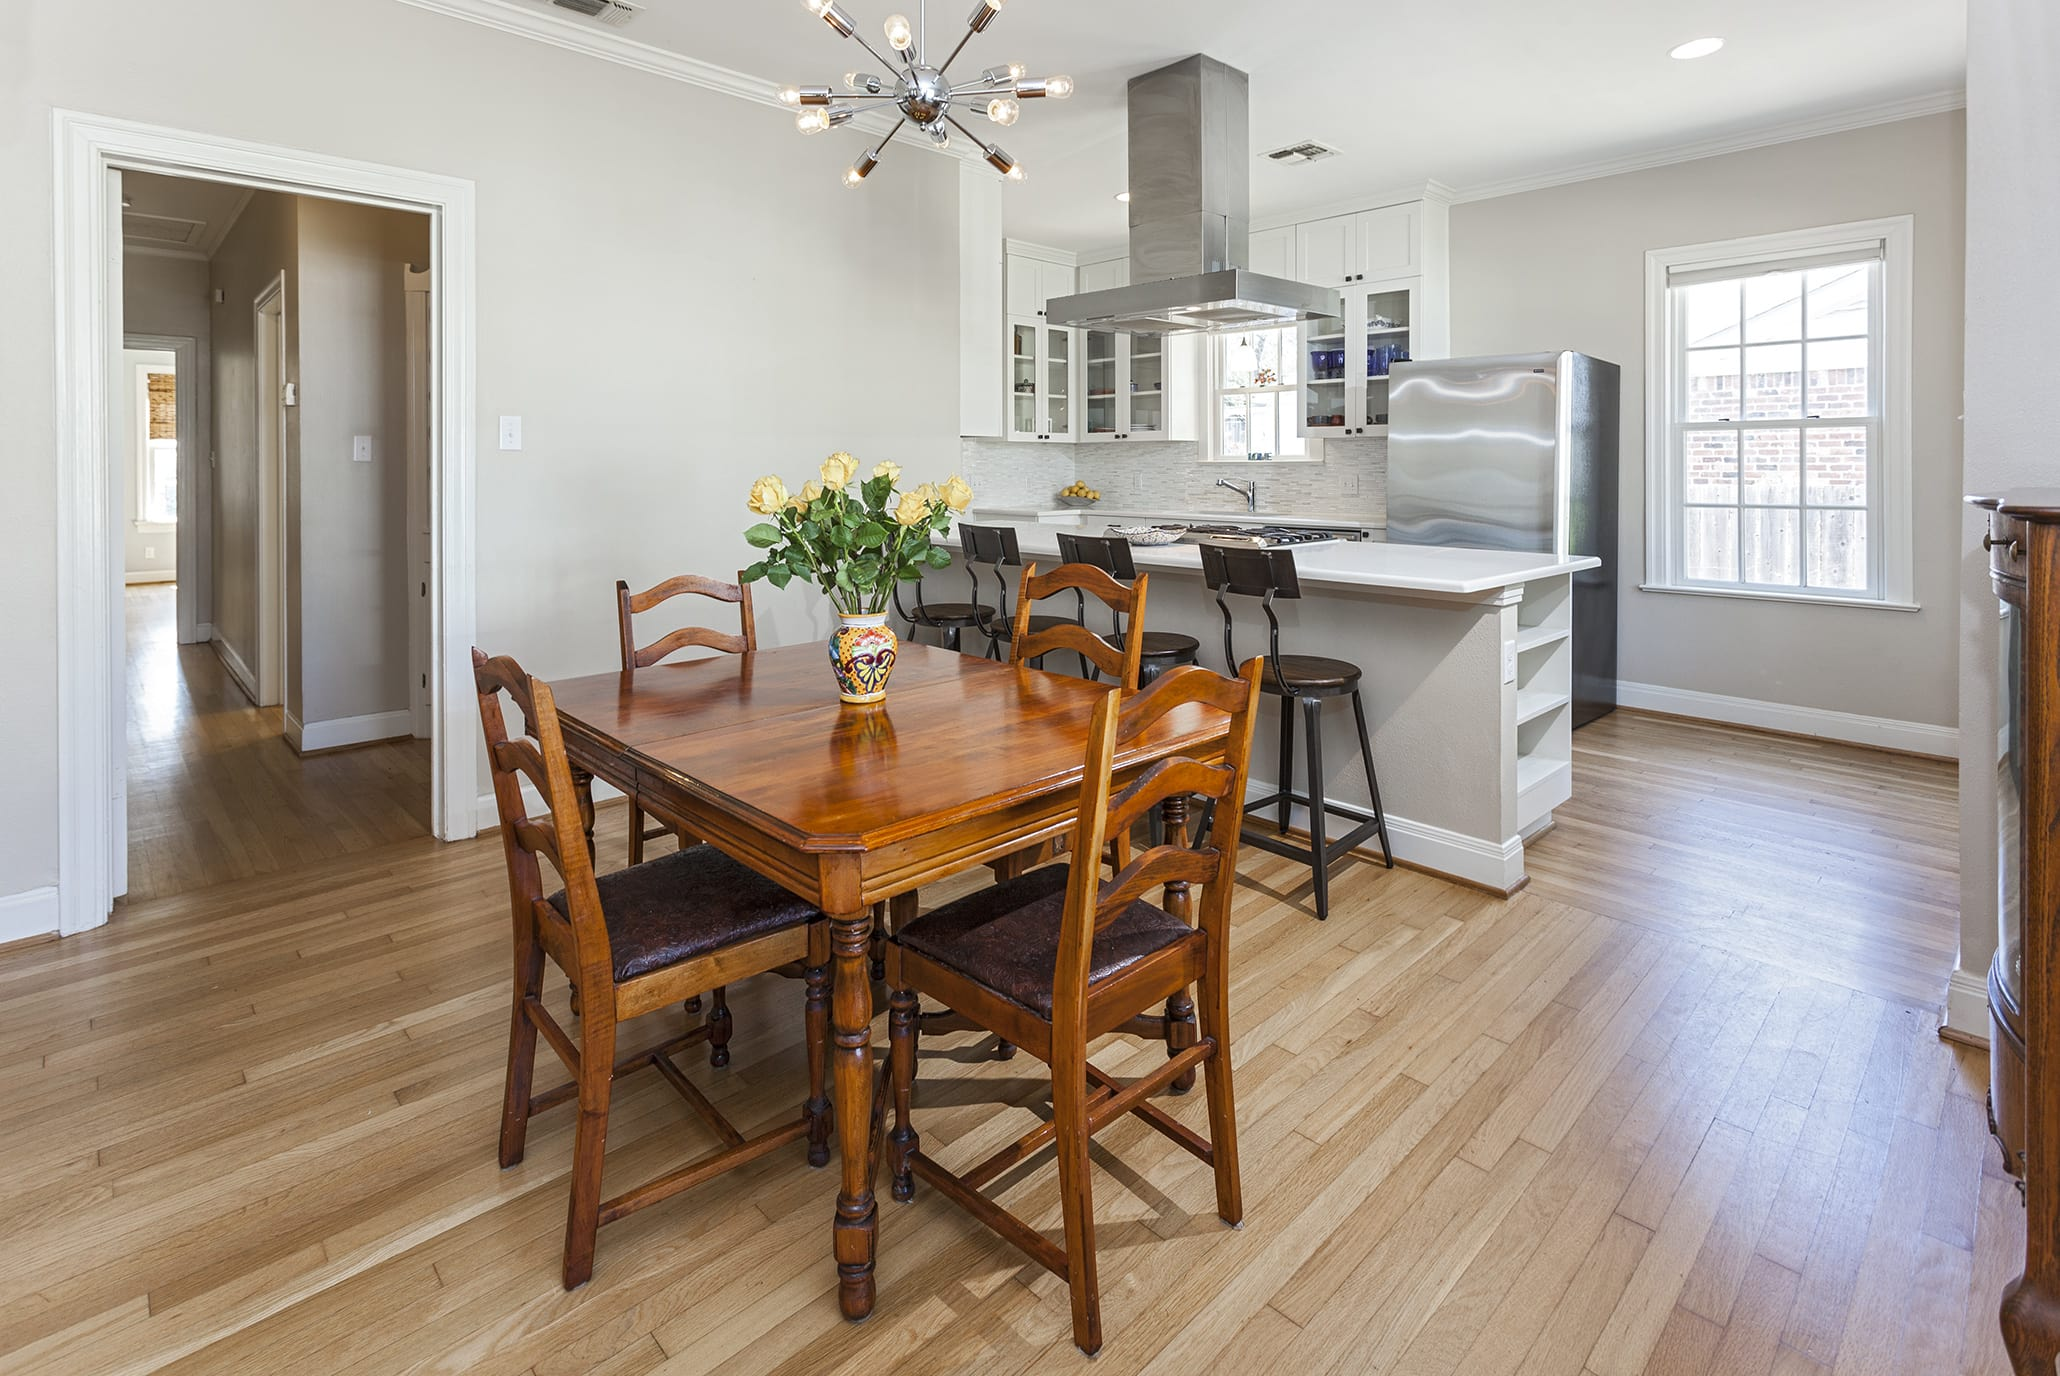 upgraded kitchen in 1611 Westover Rd